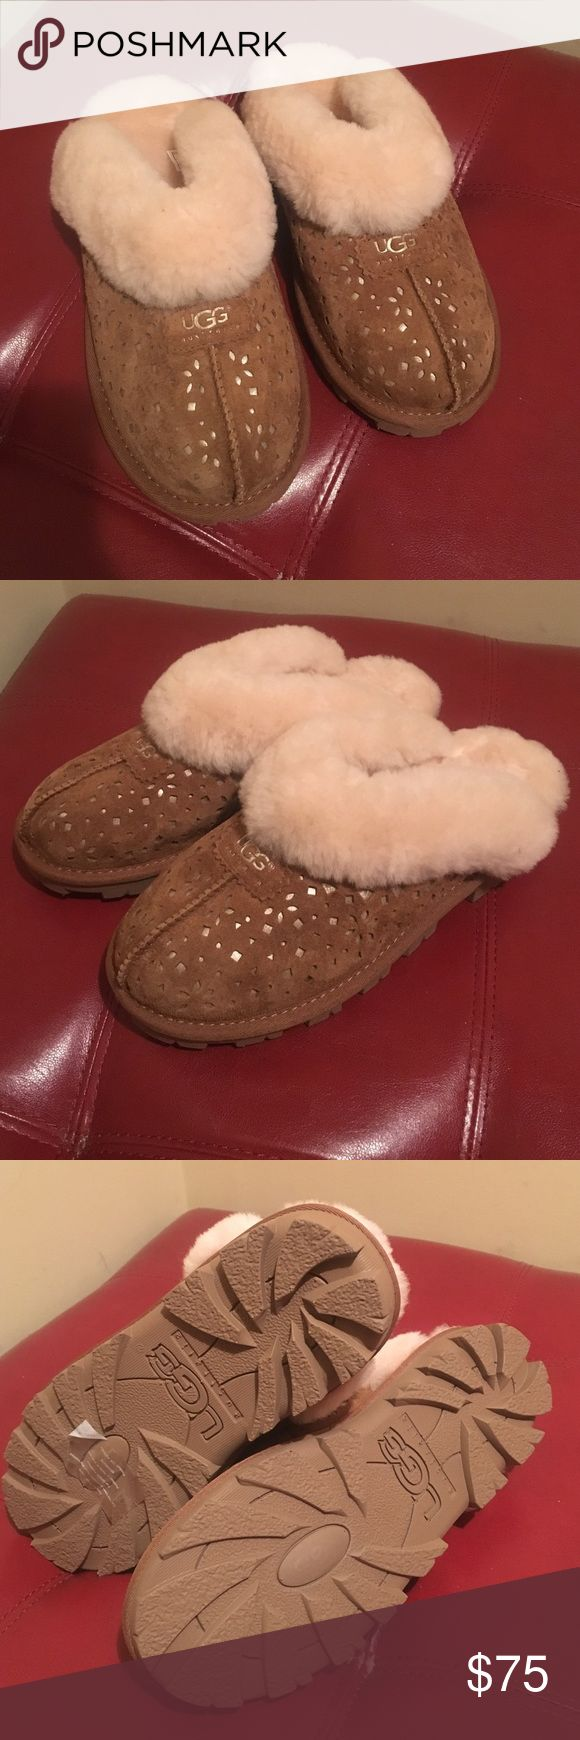 Ugg Coquette slippers Authentic Ugg Coquette slippers. Color (Chestnut). Women size 8. Price is FIRM.        📪 Same/Next day Shipping 💔 Pay Pal 💔 Trades 🚫 No Haggling  🐶 Free home 🚬 Free home Please do not negotiate price in the comments area as I will NOT respond.  Thanks for checking out my closet  🍭SweetLady🍬 UGG Shoes Slippers